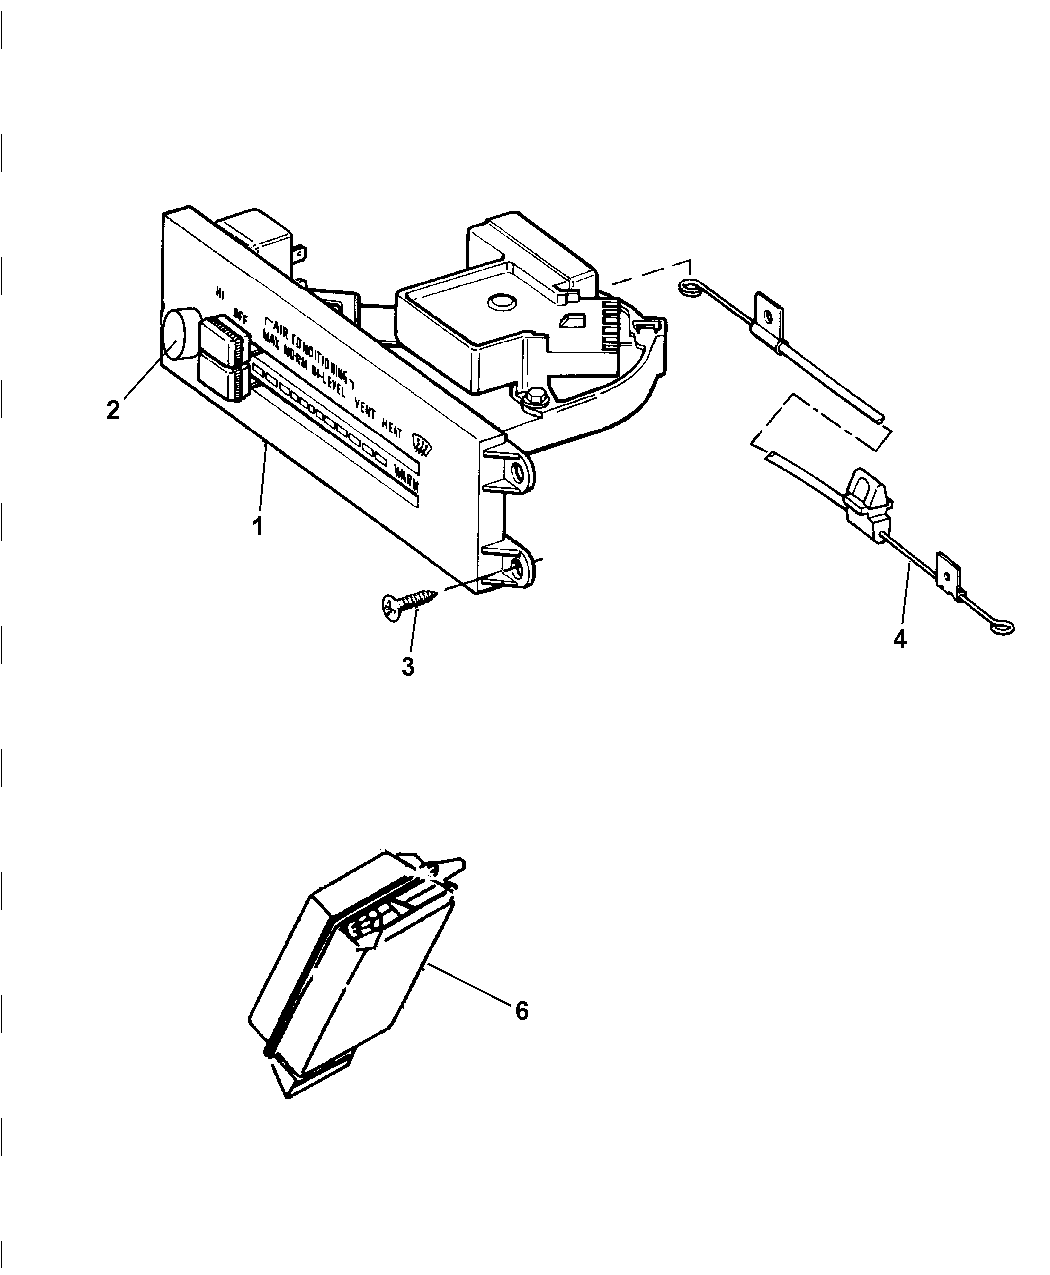 1997 Jeep Wrangler Control, Heater And Air Conditioner